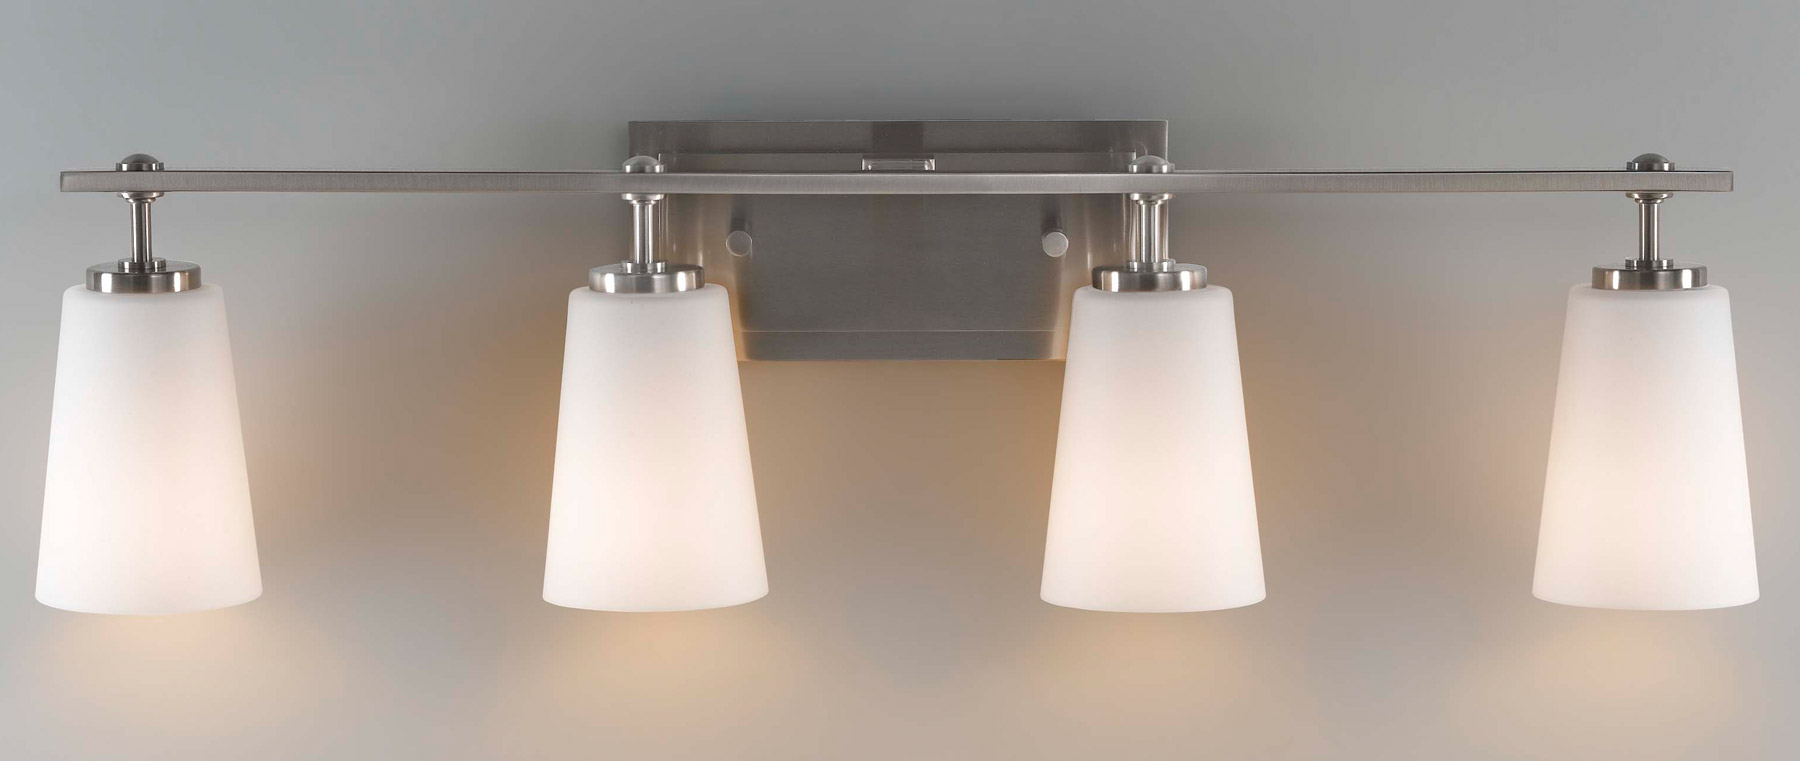 Murray Feiss Vs14904 Bs Sunset Drive Vanity Light